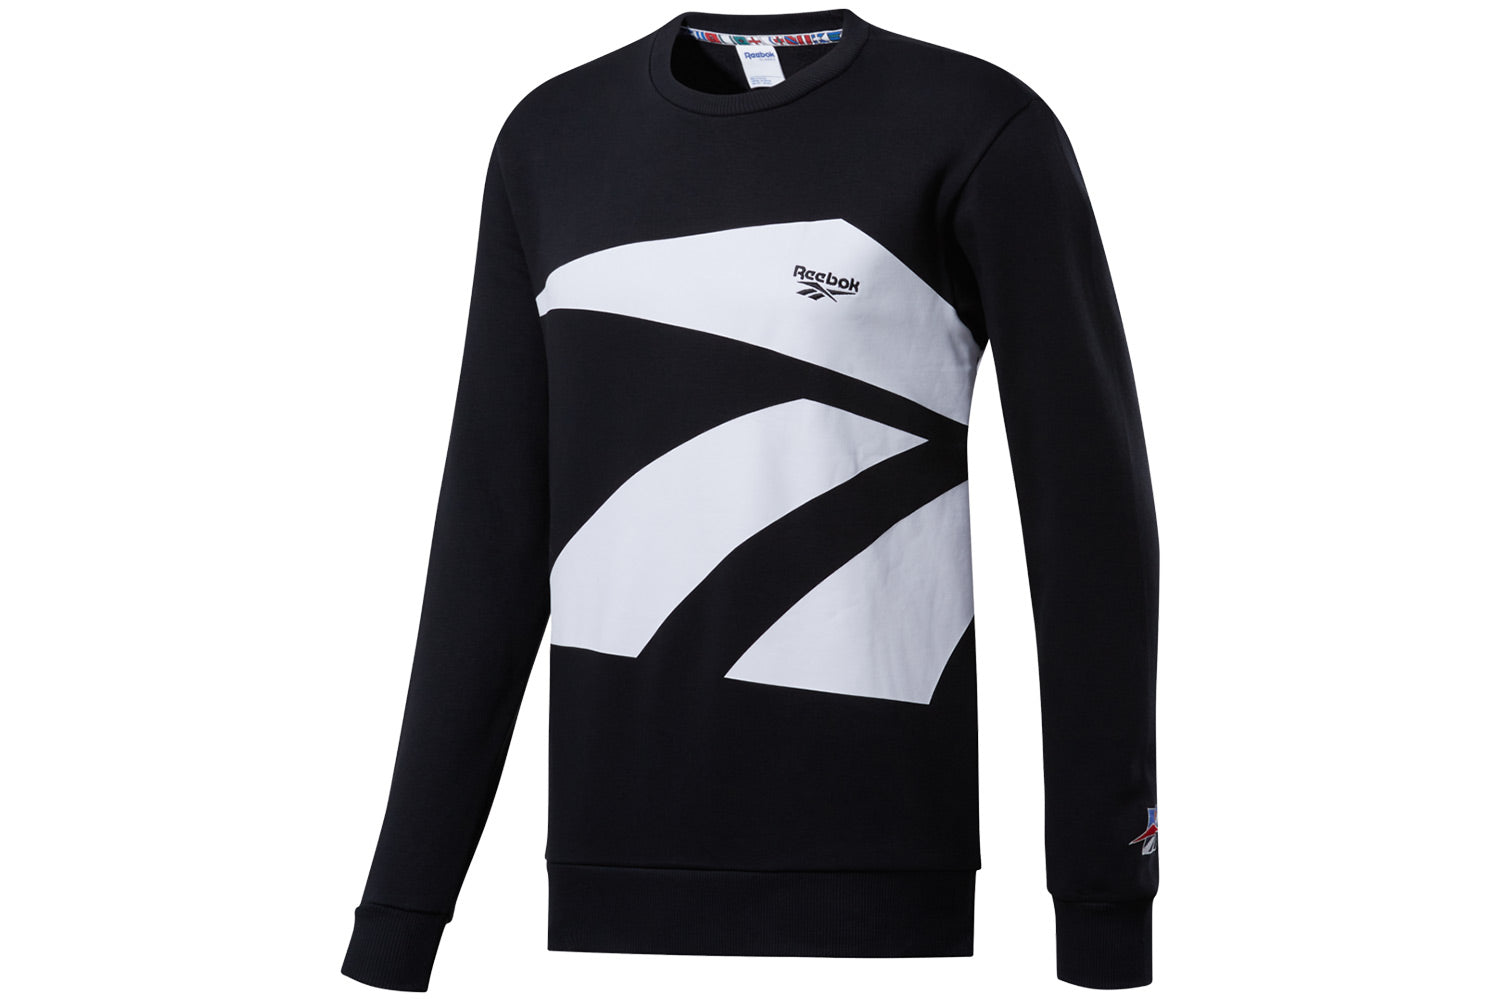 Classics International Crew Sweatshirt - Schrittmacher Shop